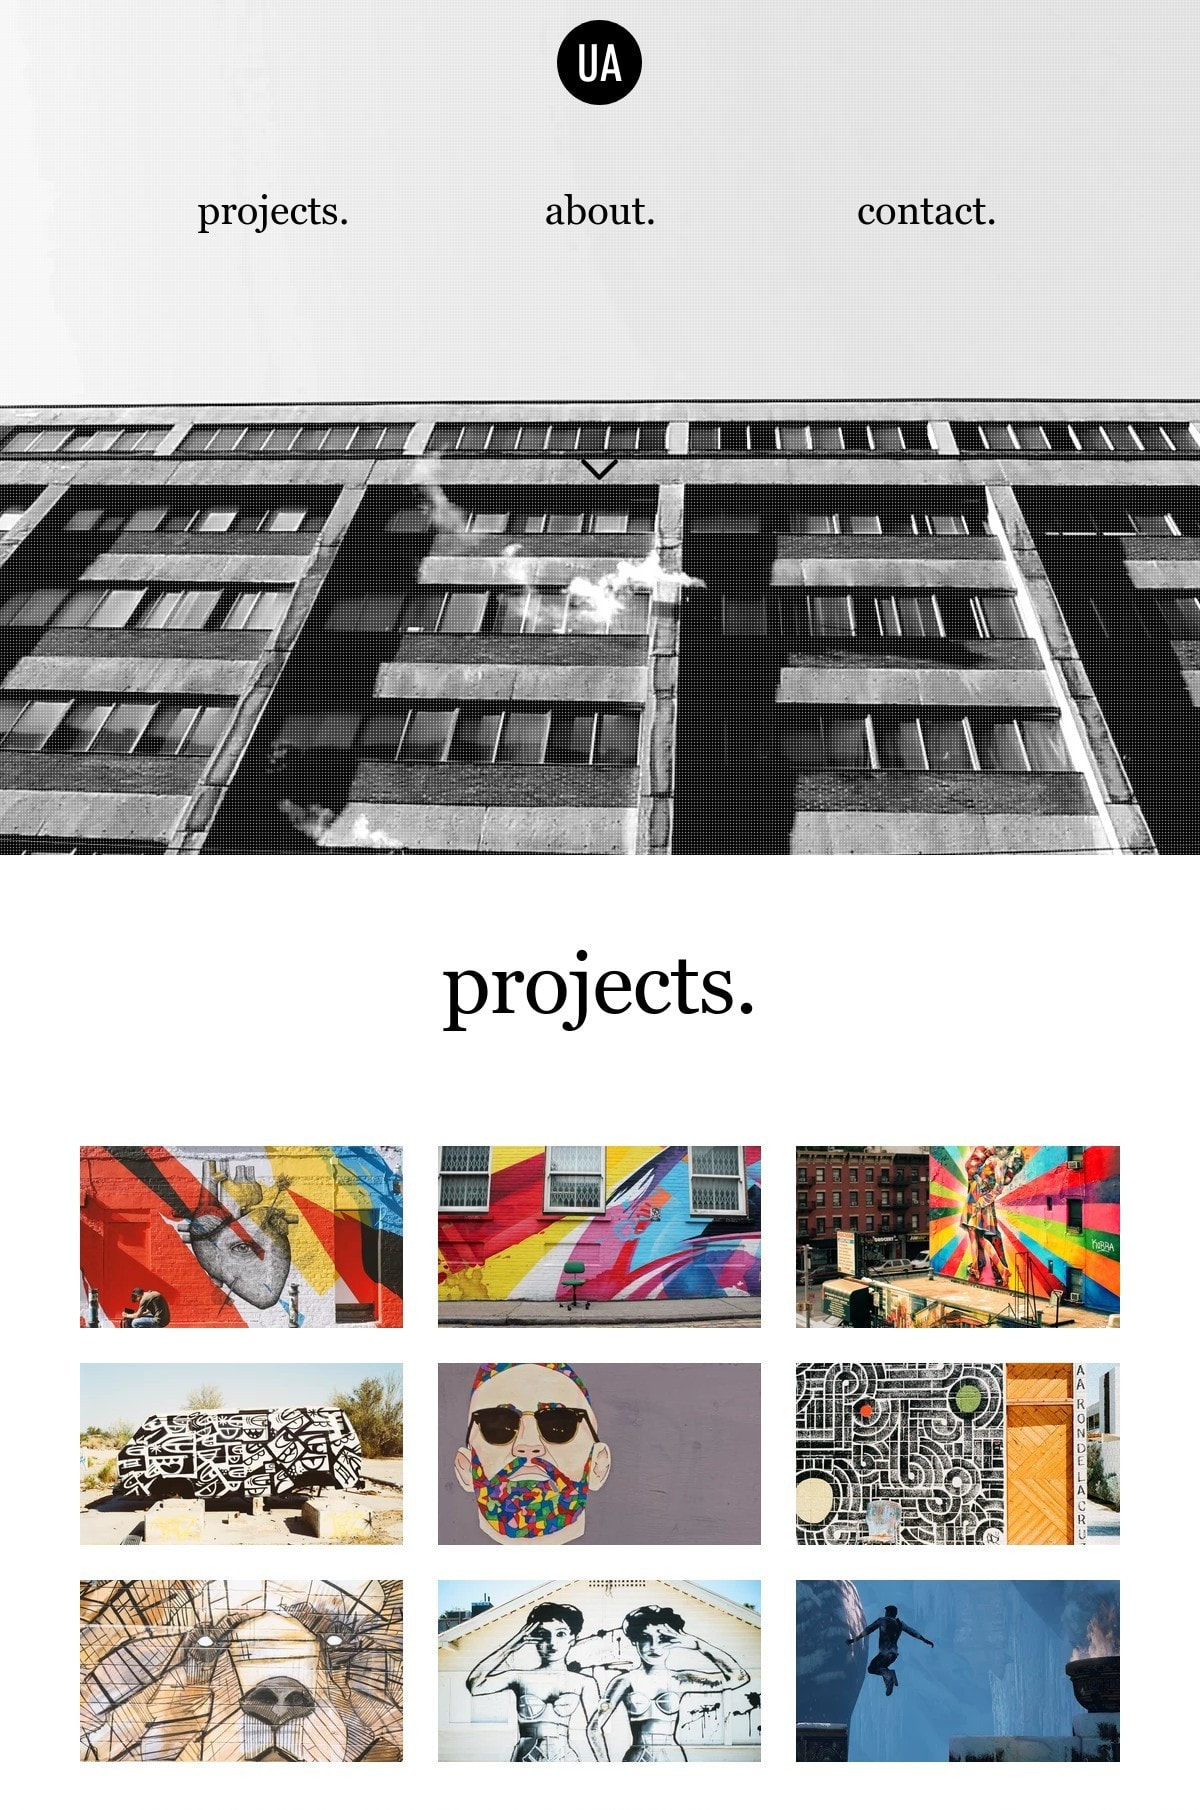 6 Best Wix Templates For Architect Websites-image8